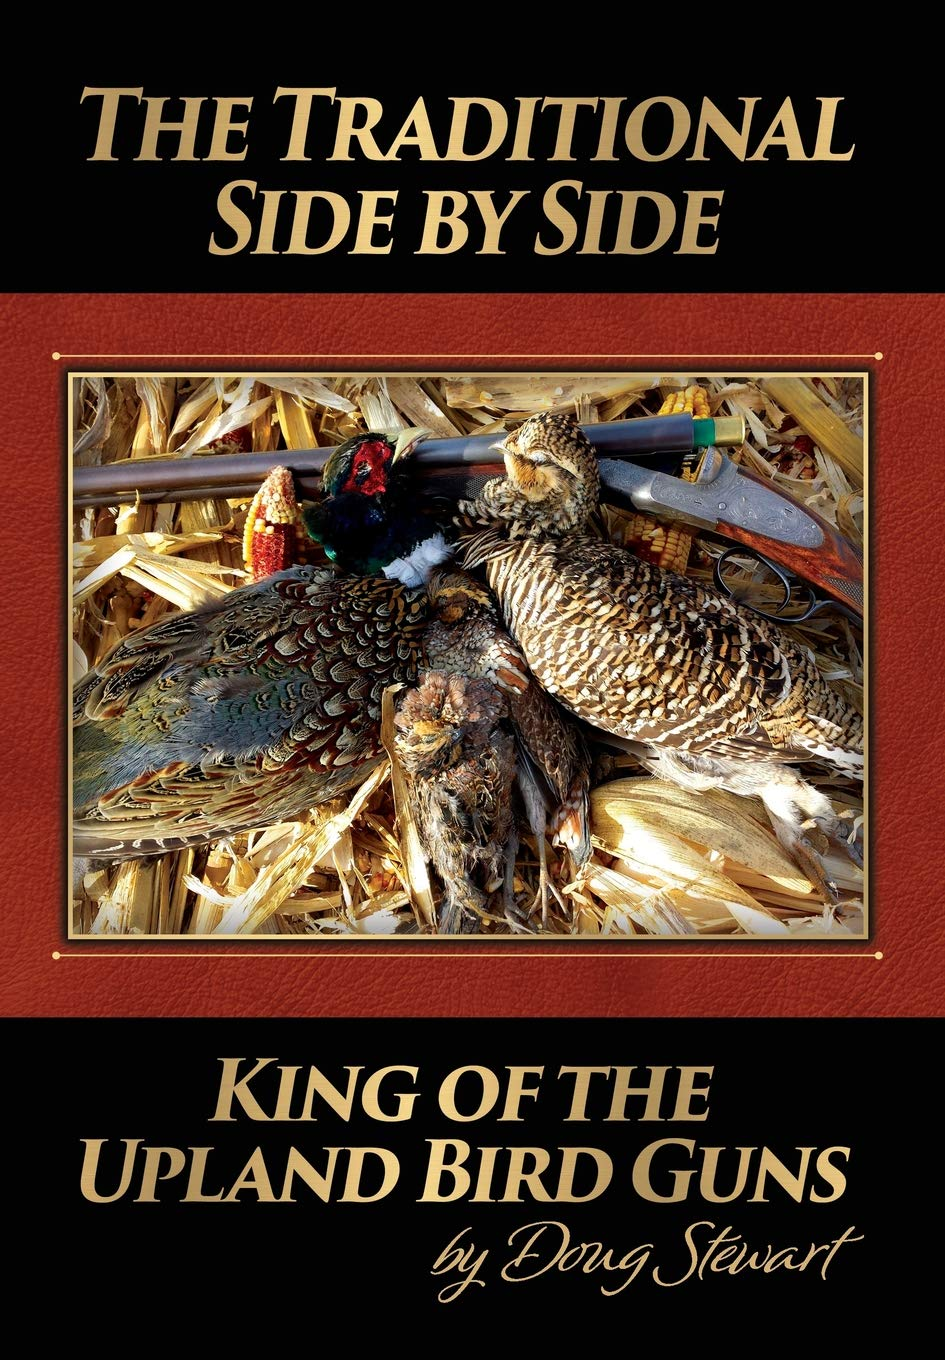 The Traditional Side by Side: King of the Upland Bird Guns